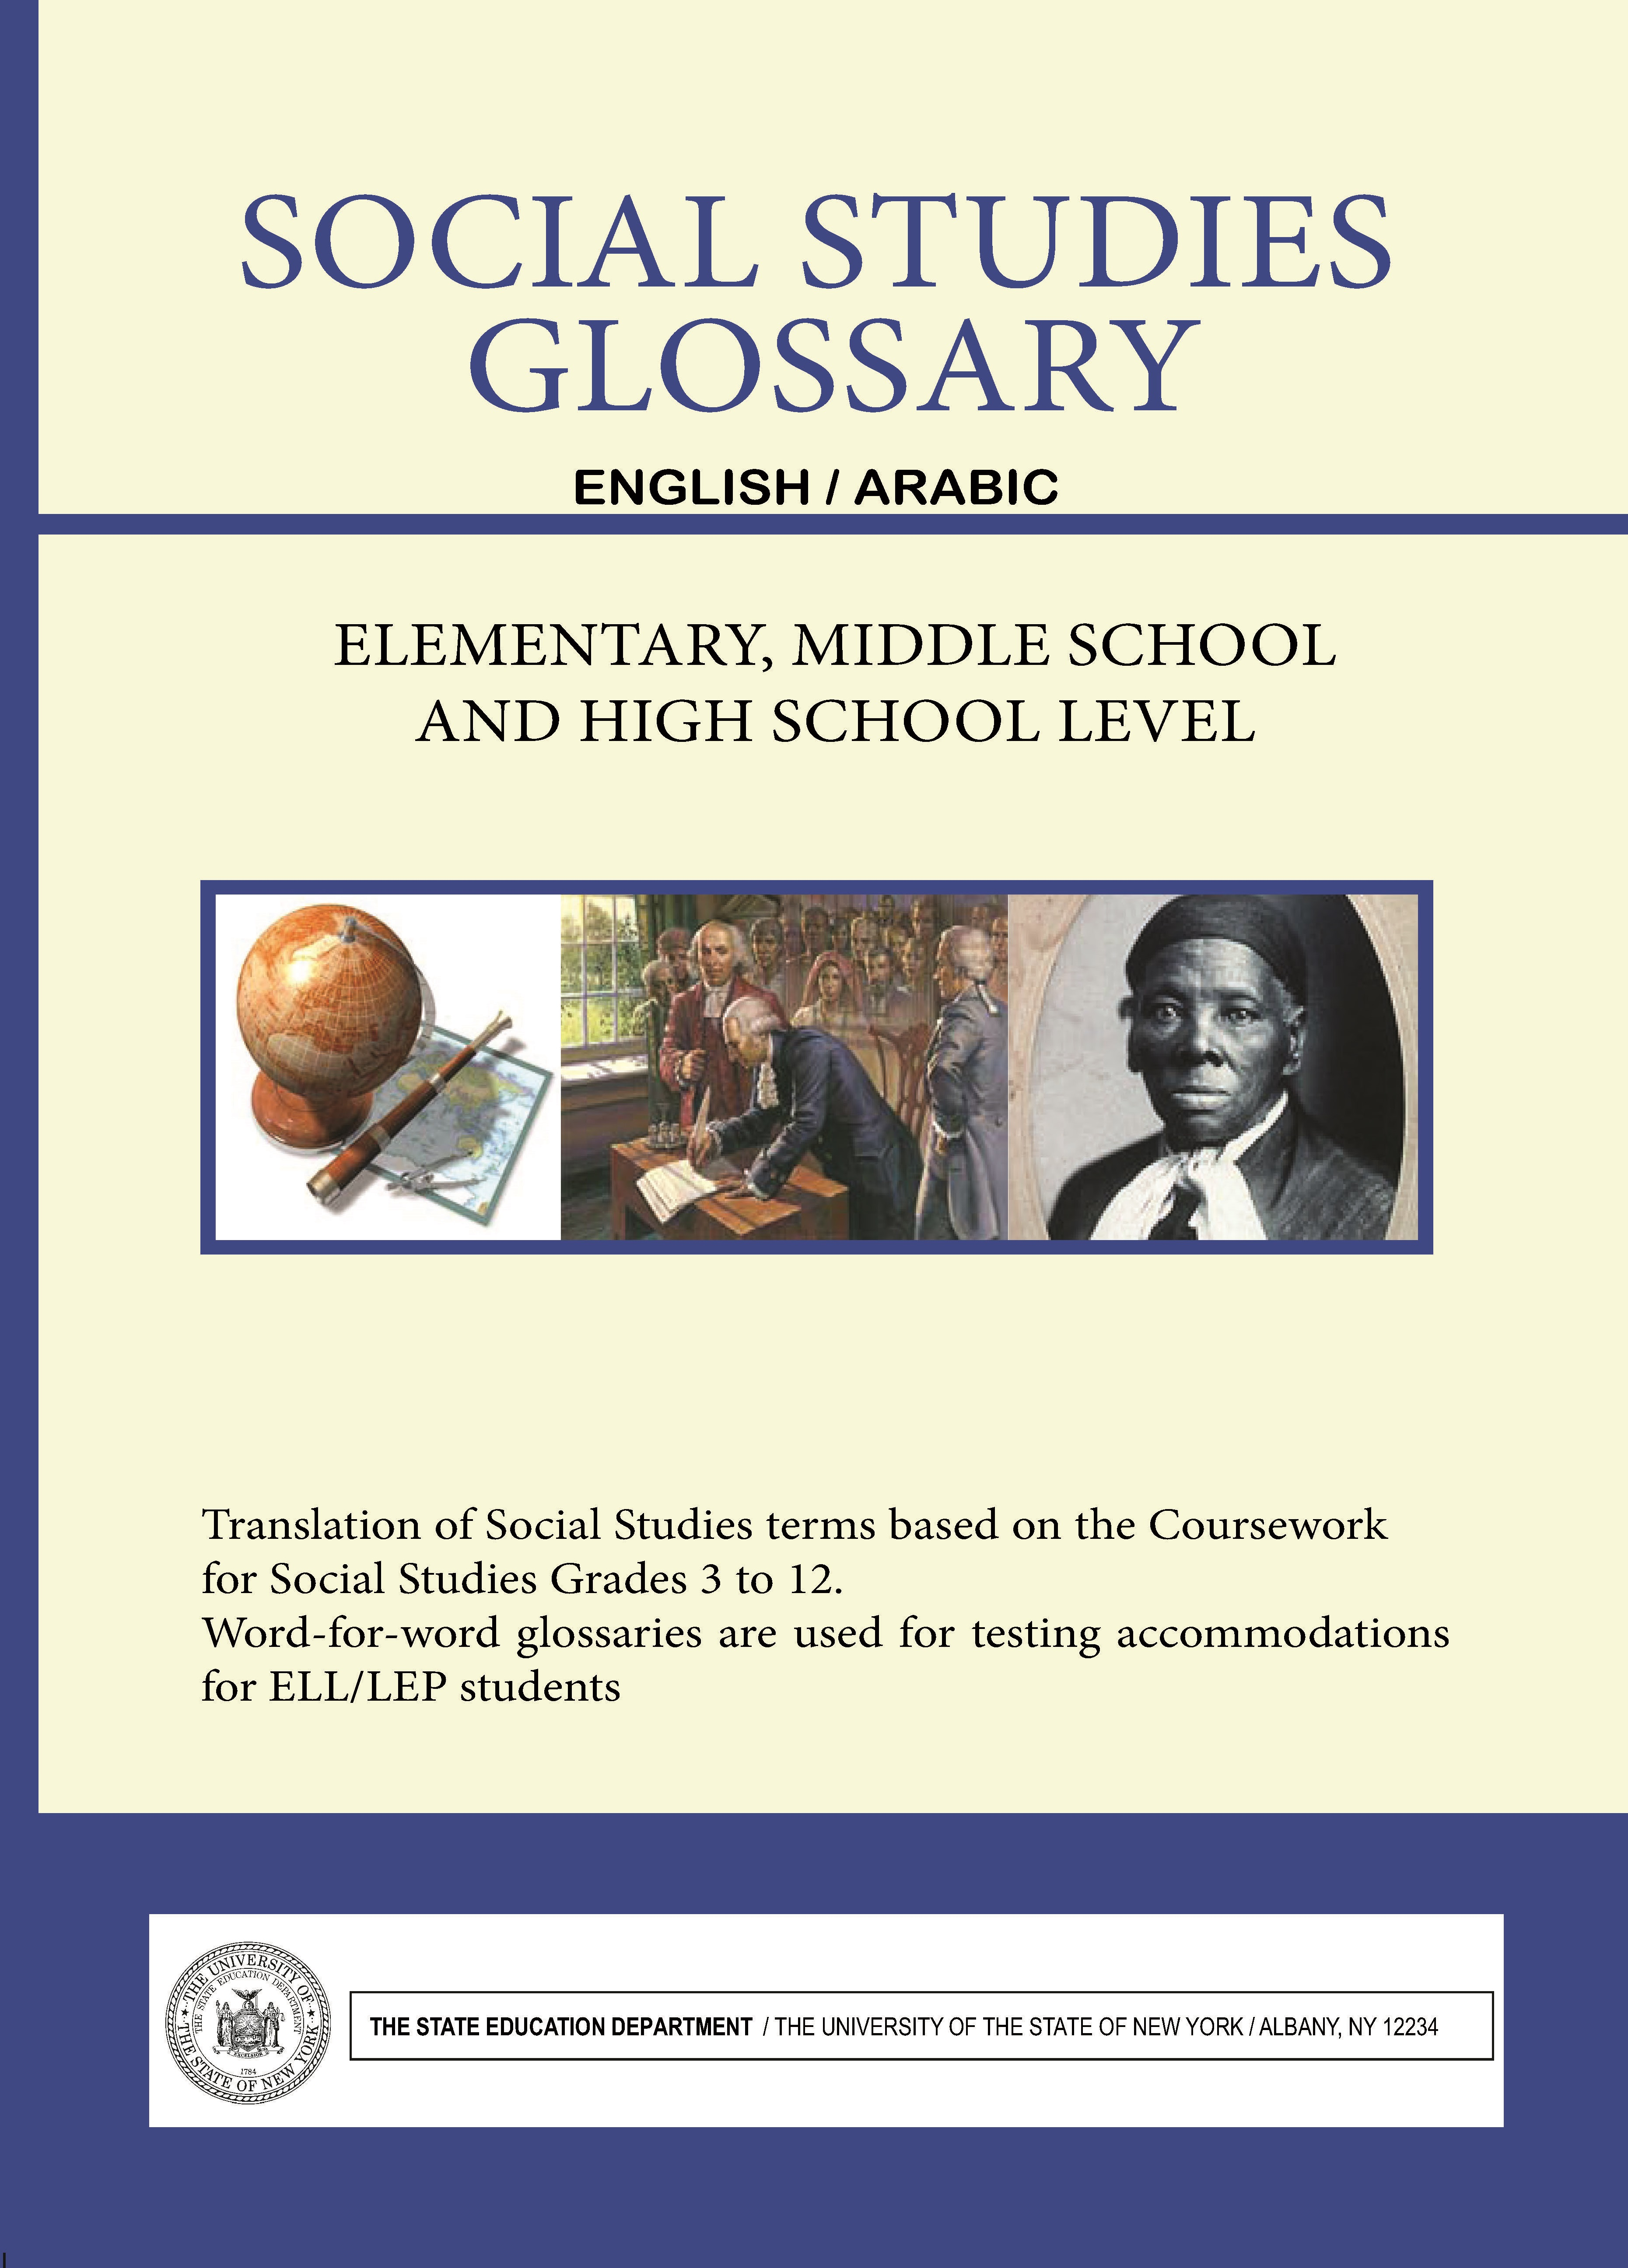 Social Studies Glossary  English/Arabic  Elementary, Middle School and High School Level